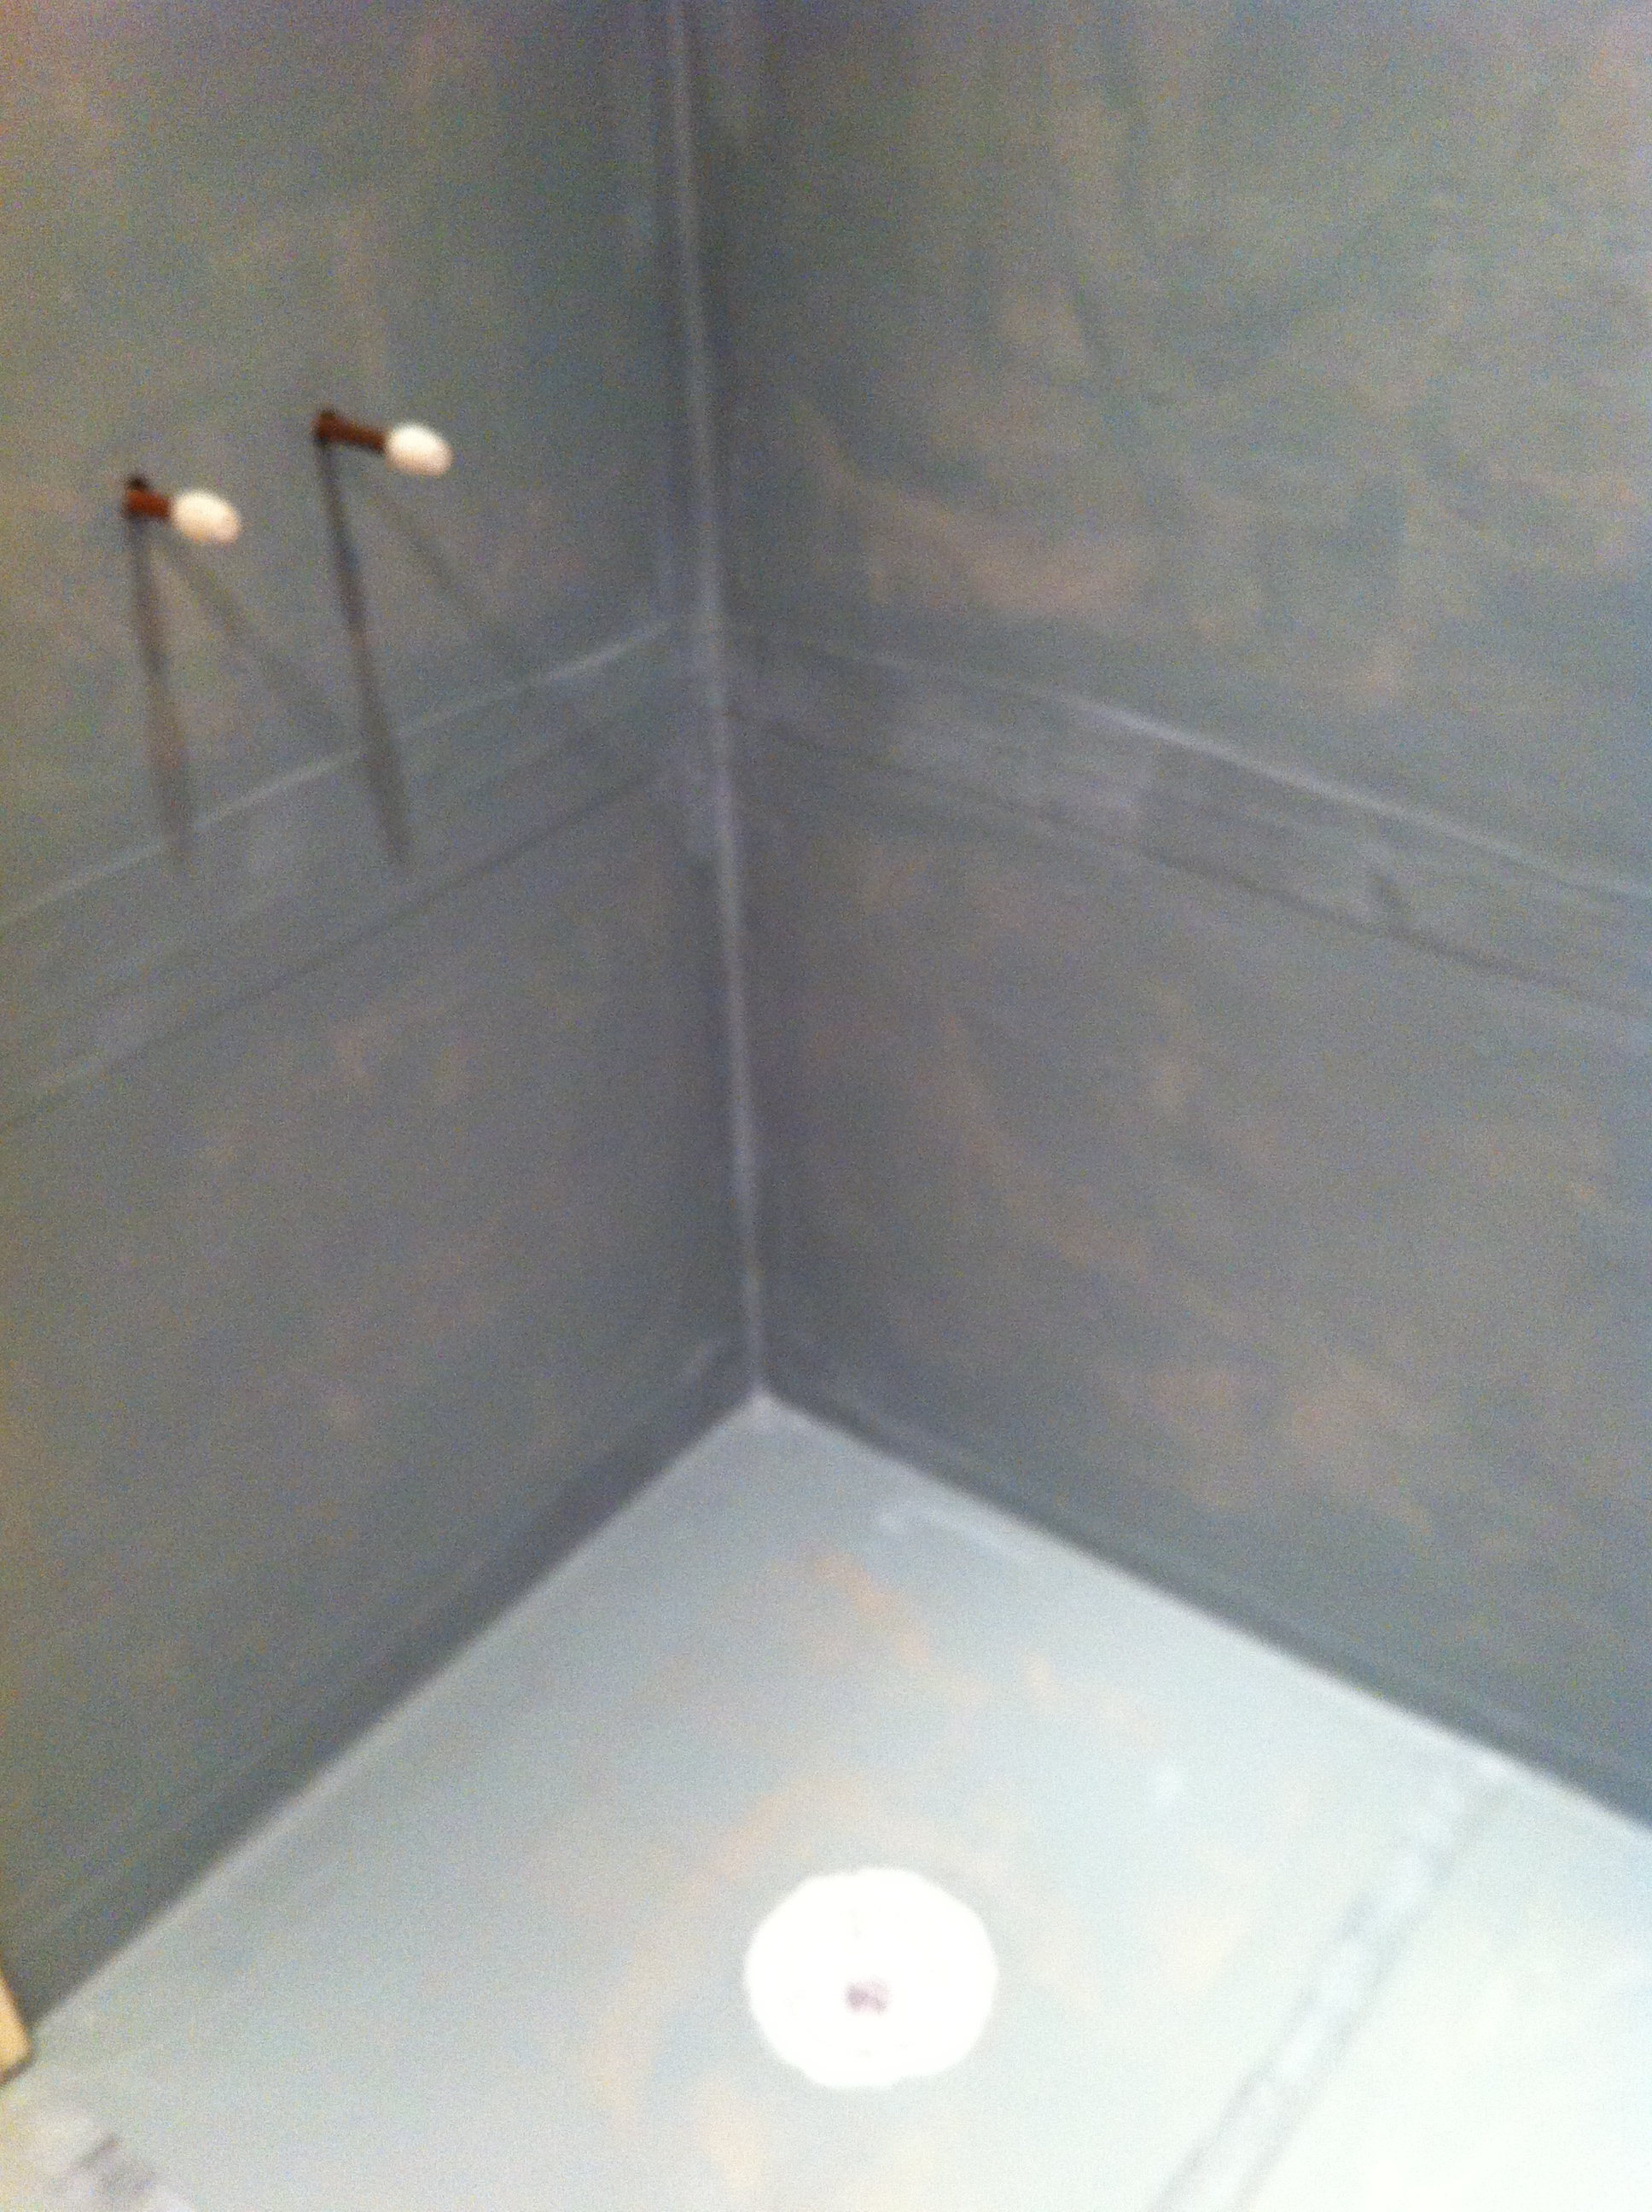 Apollo design wet room installations and bathroom design dailygadgetfo Image collections